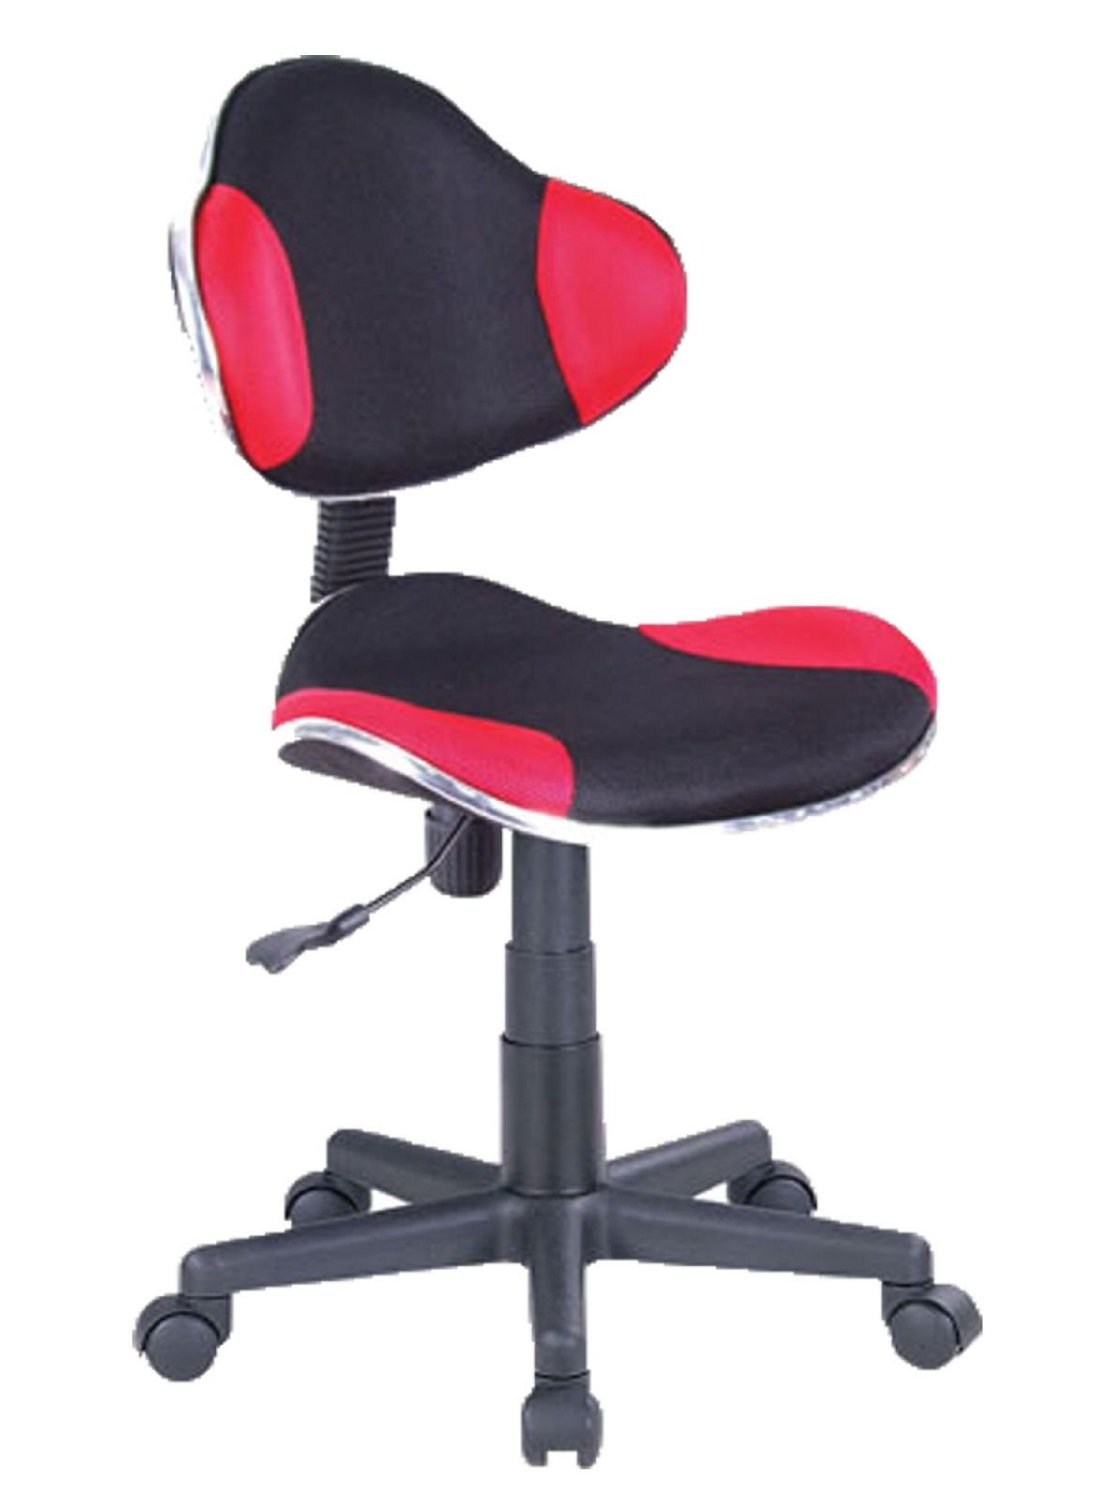 Computer Desk Office Chair W Mesh Fabric. (Black & Red) - KAT_CH02